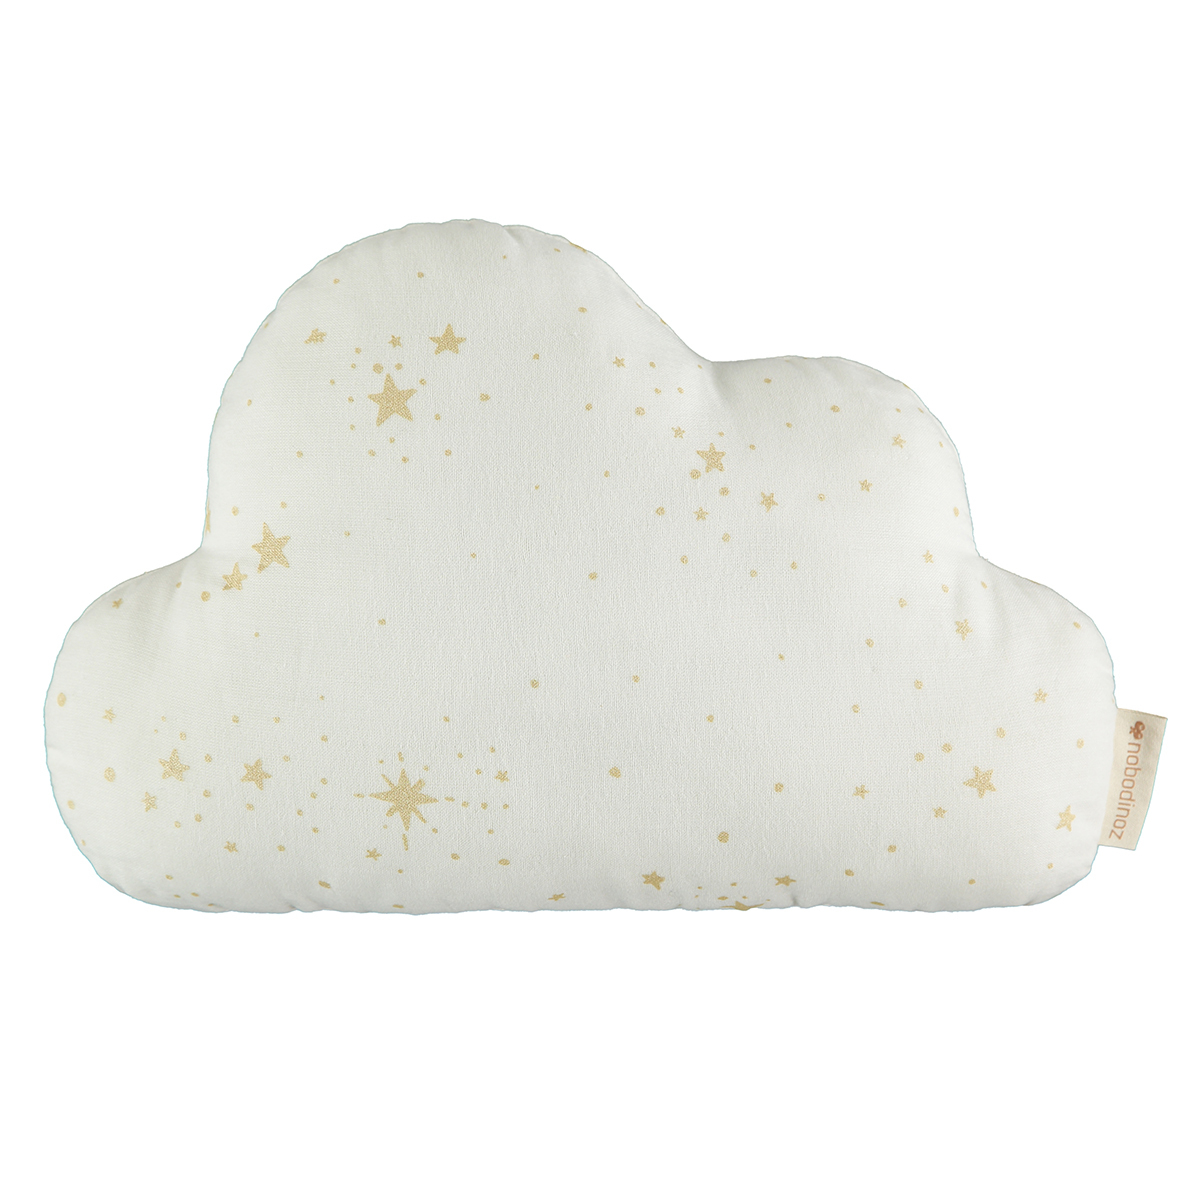 Coussin Coussin Cloud - Gold Stella & White Coussin Cloud - Gold Stella & White